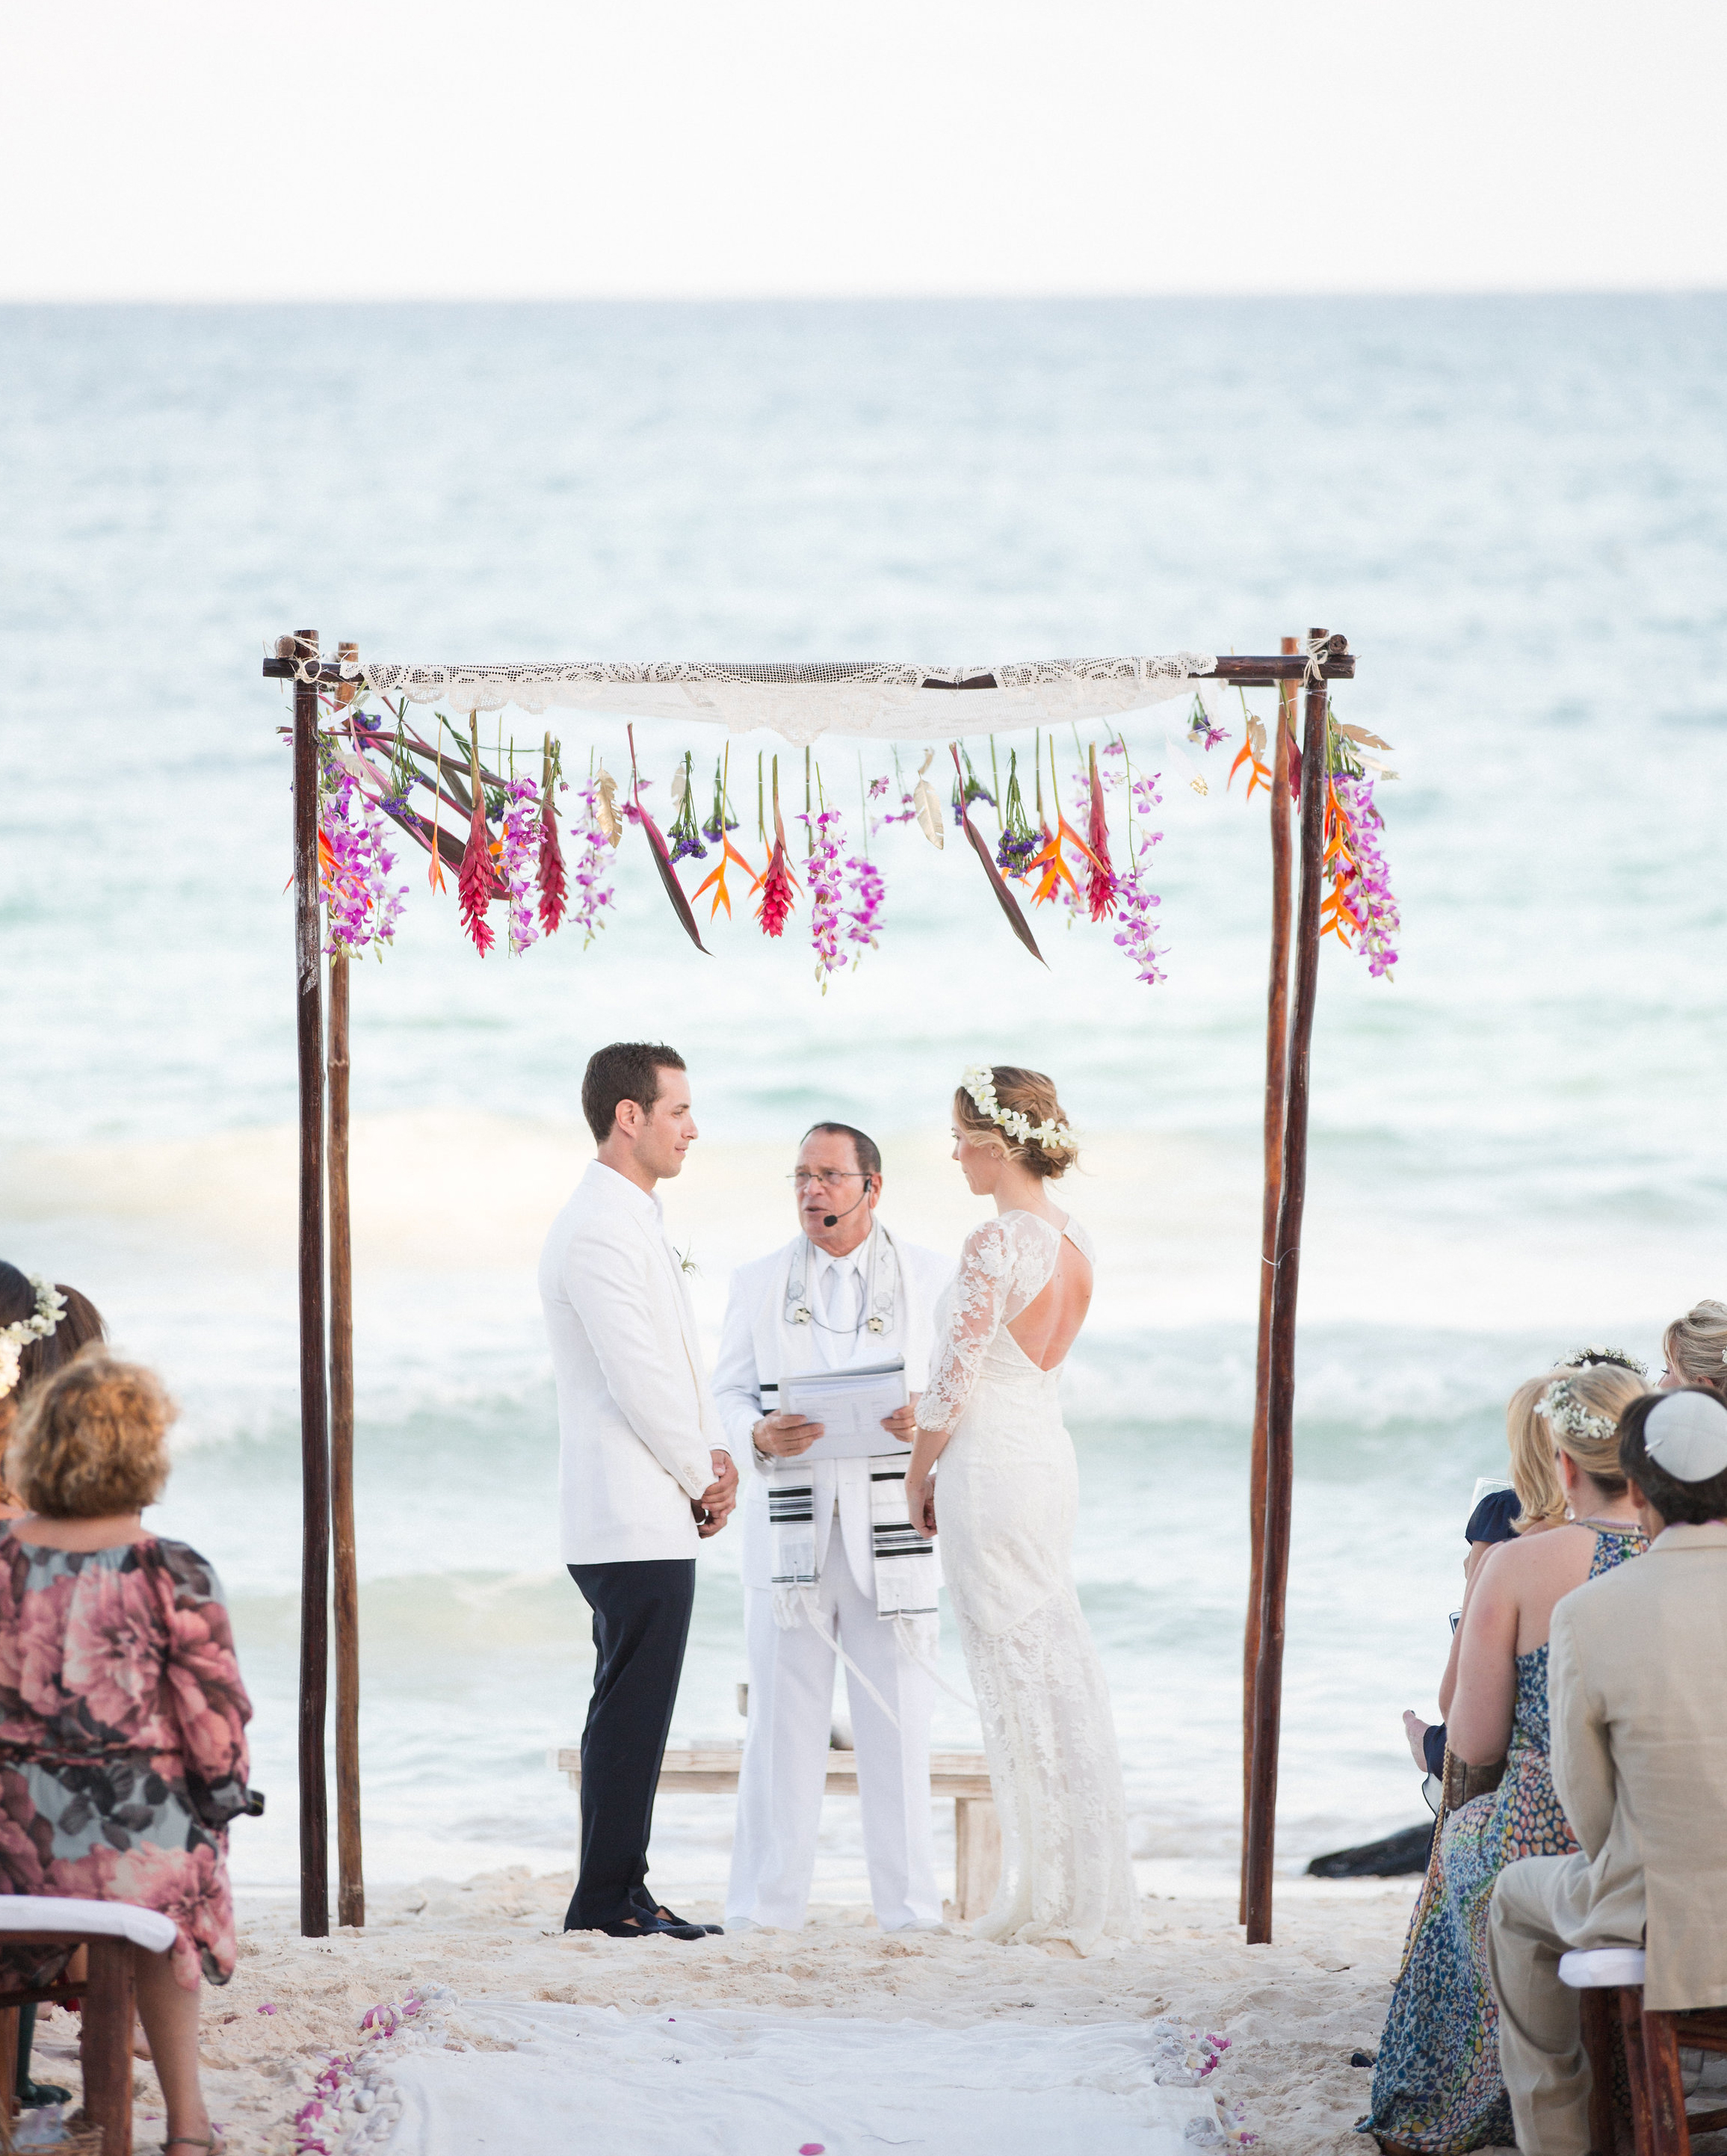 Beach Wedding Ceremony Processional: Olivia And Keith's Dia De Los Muertos Beach Wedding